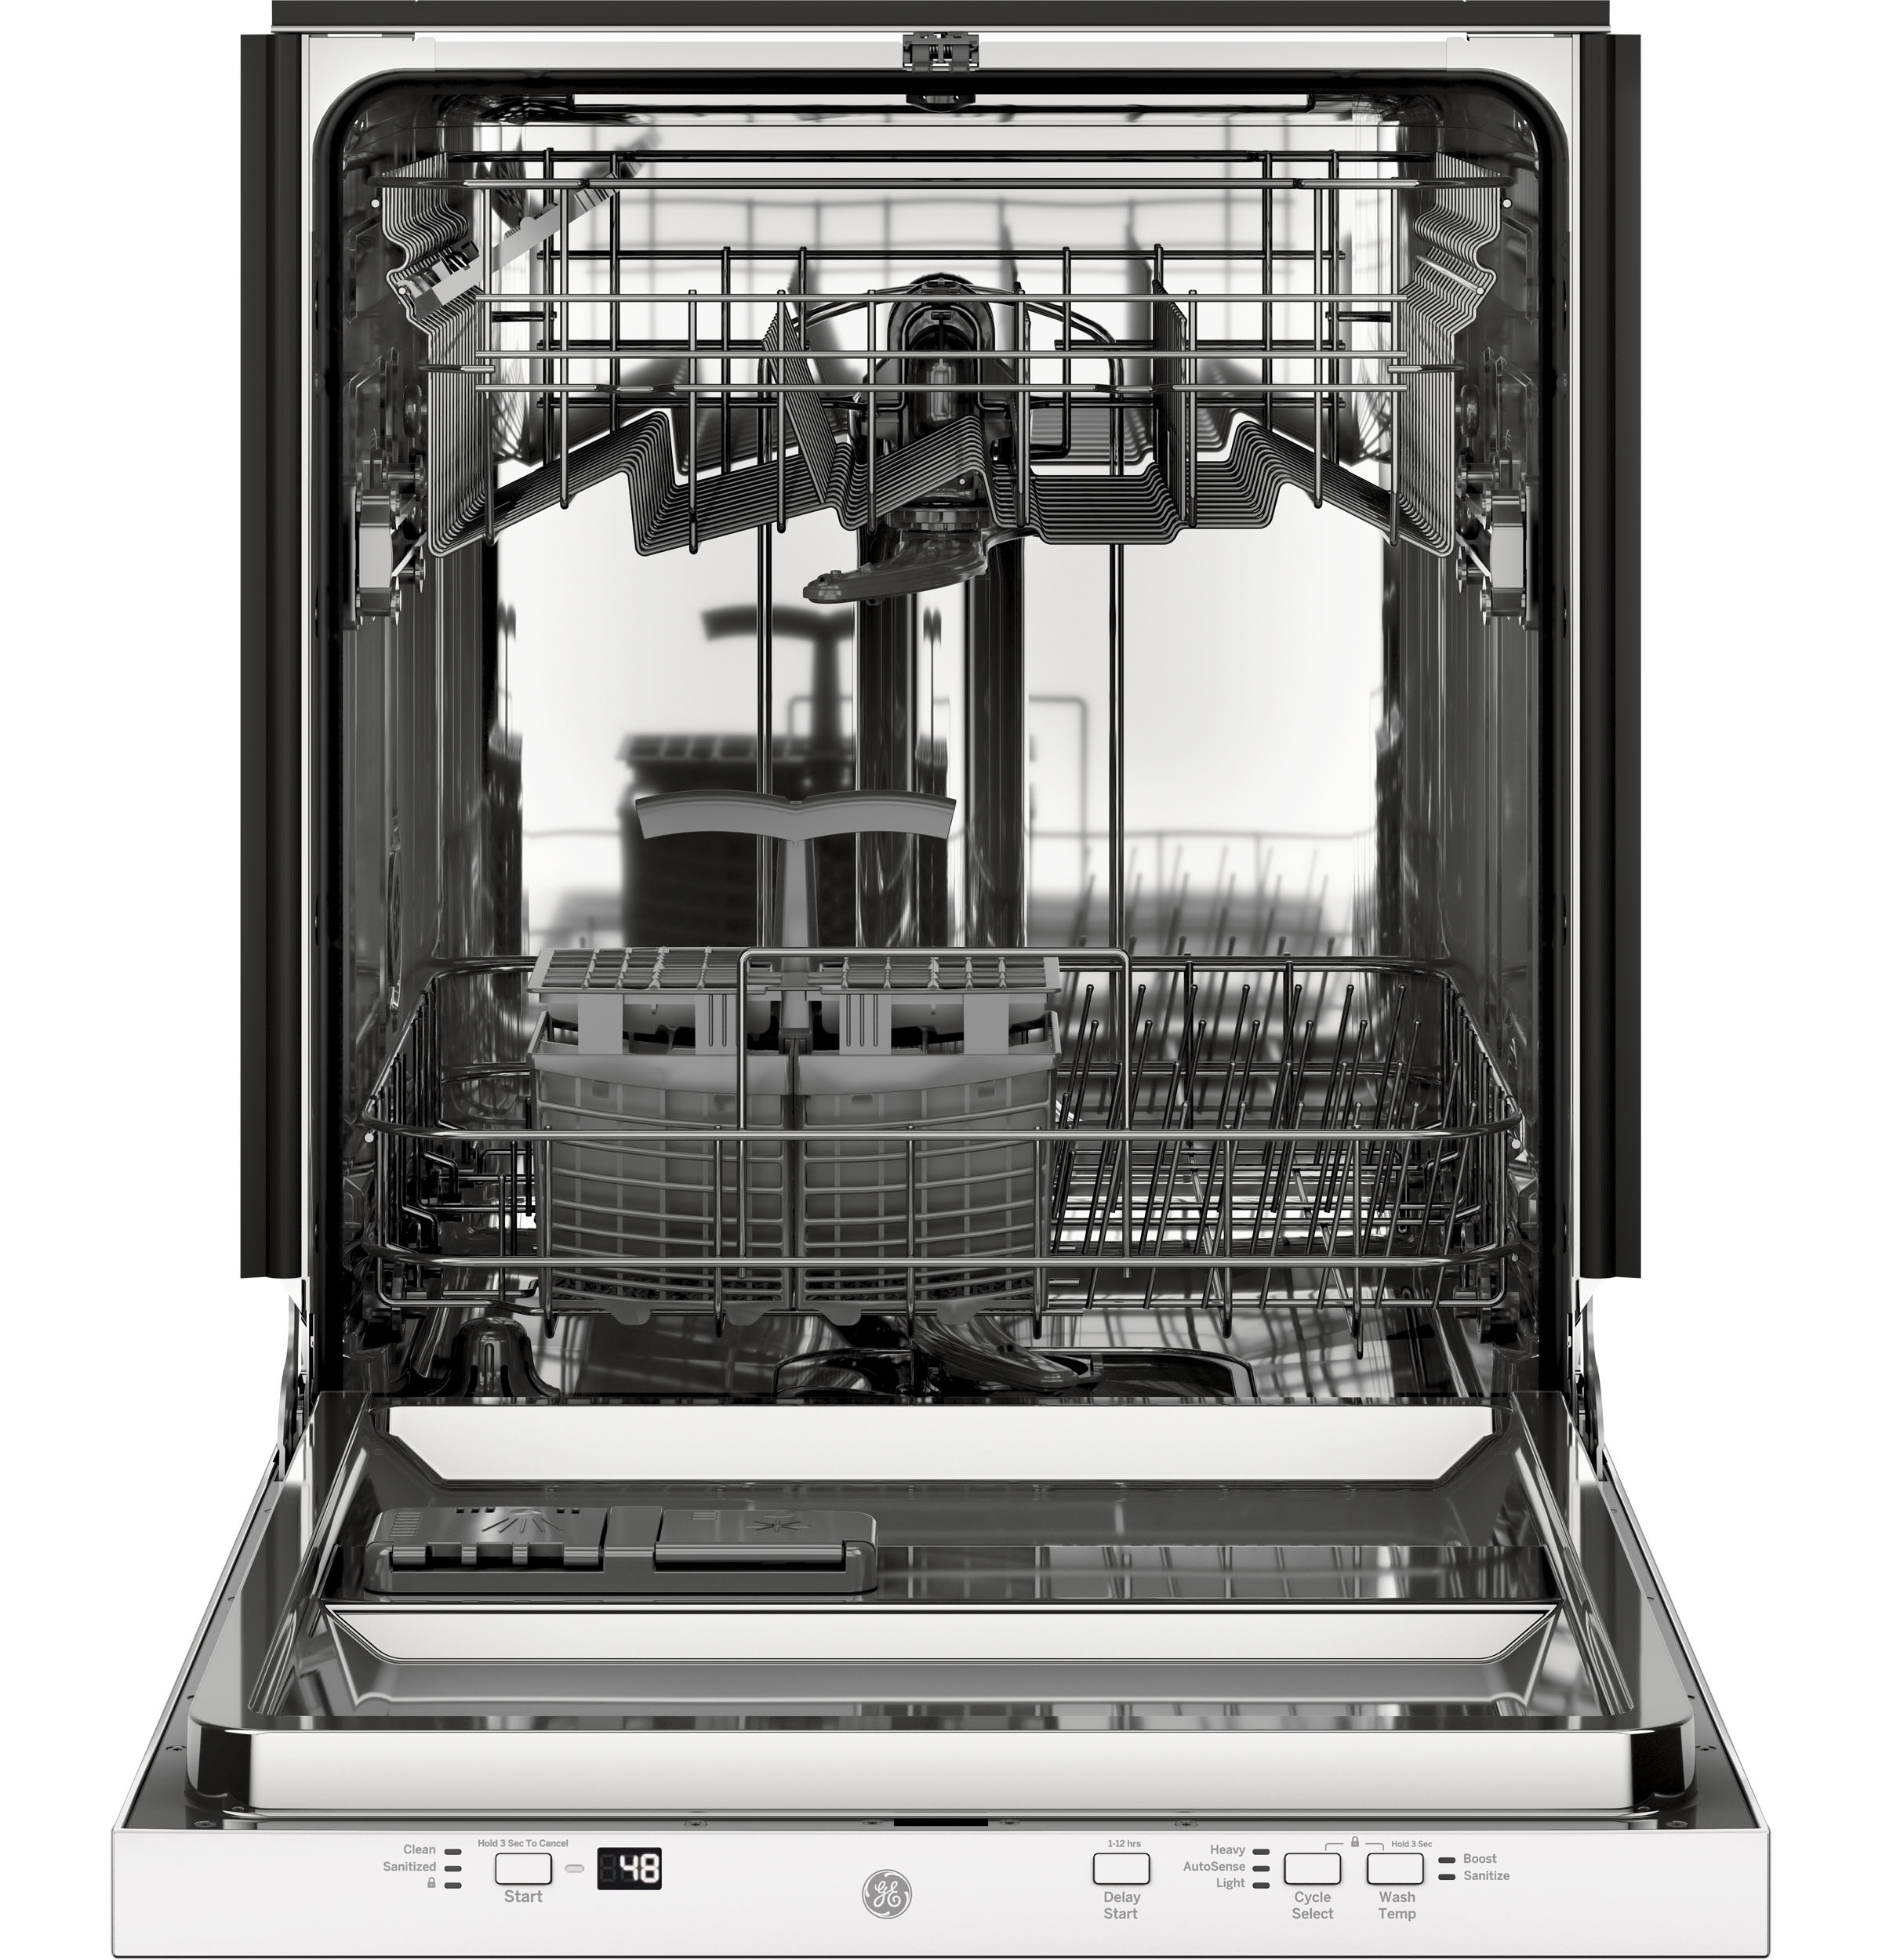 Model: GDT226SGLWW | GE GE® ADA Compliant Stainless Steel Interior Dishwasher with Sanitize Cycle